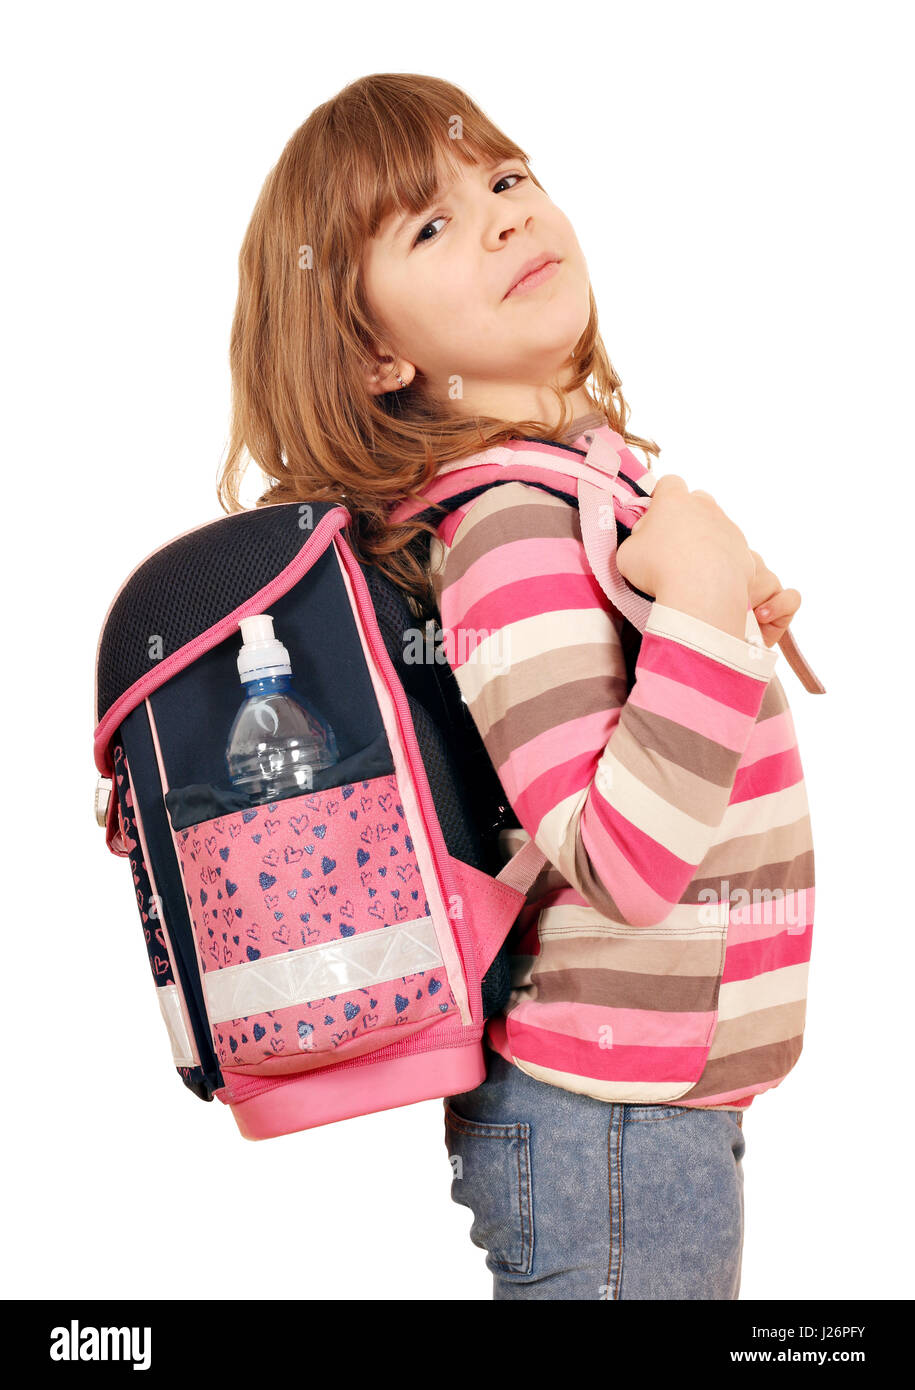 little girl carrying a heavy school bag - Stock Image